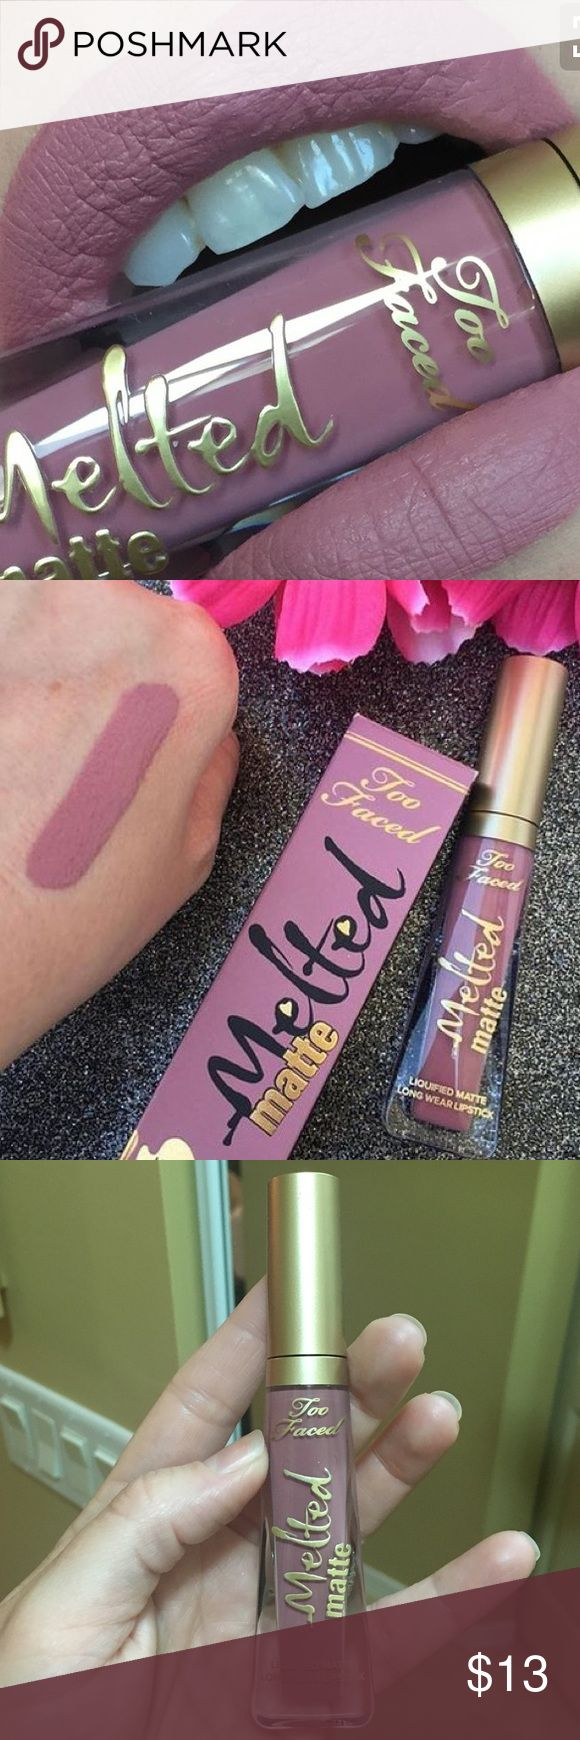 Too Faced Melted Matte Liquified long wear lipstick/gloss in Queen B. 100% Authentic (purchased at Sephora) and only swatched. I just prefer shiny over matte. Perfect neutral pink/purple color that looks good on every skin tone! Price firm. Too Faced Makeup Lipstick